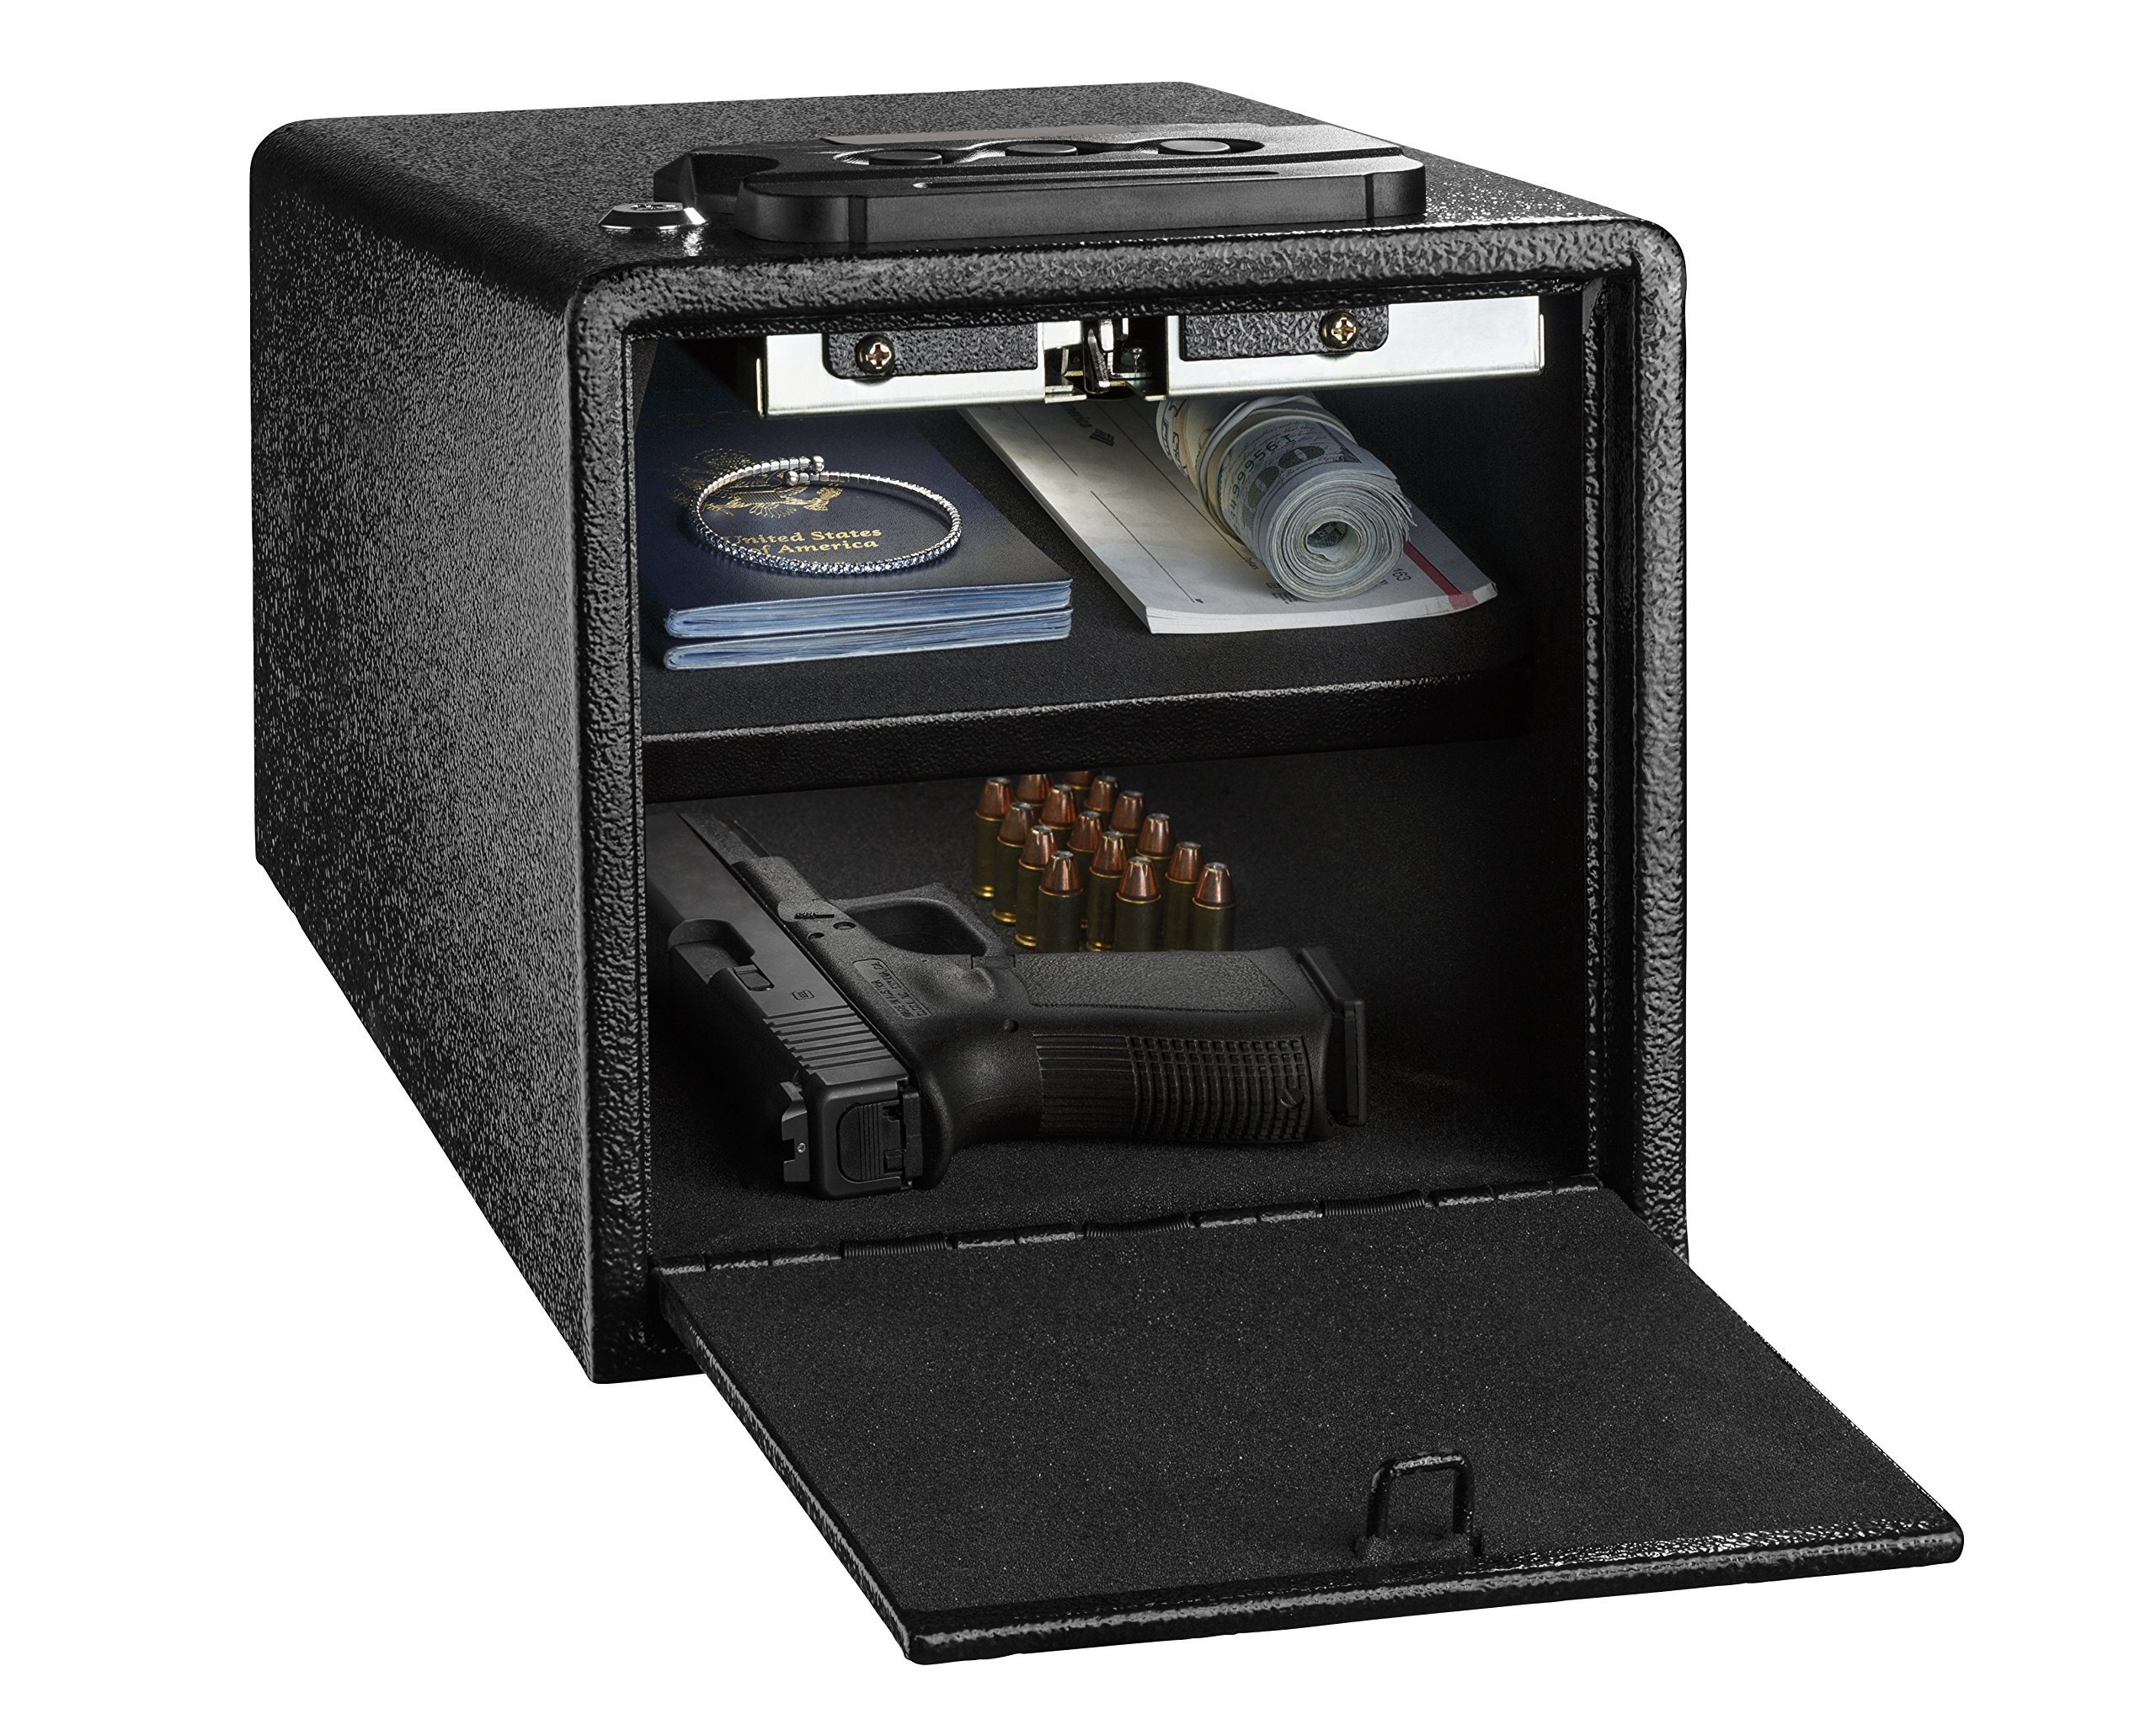 AdirOffice Pistol Safe - Electronic, Easy to Install, Heavy Duty Storage for Firearms Cash Jewelry Documents & More - for Home Office Hotel Use (Black, Medium)